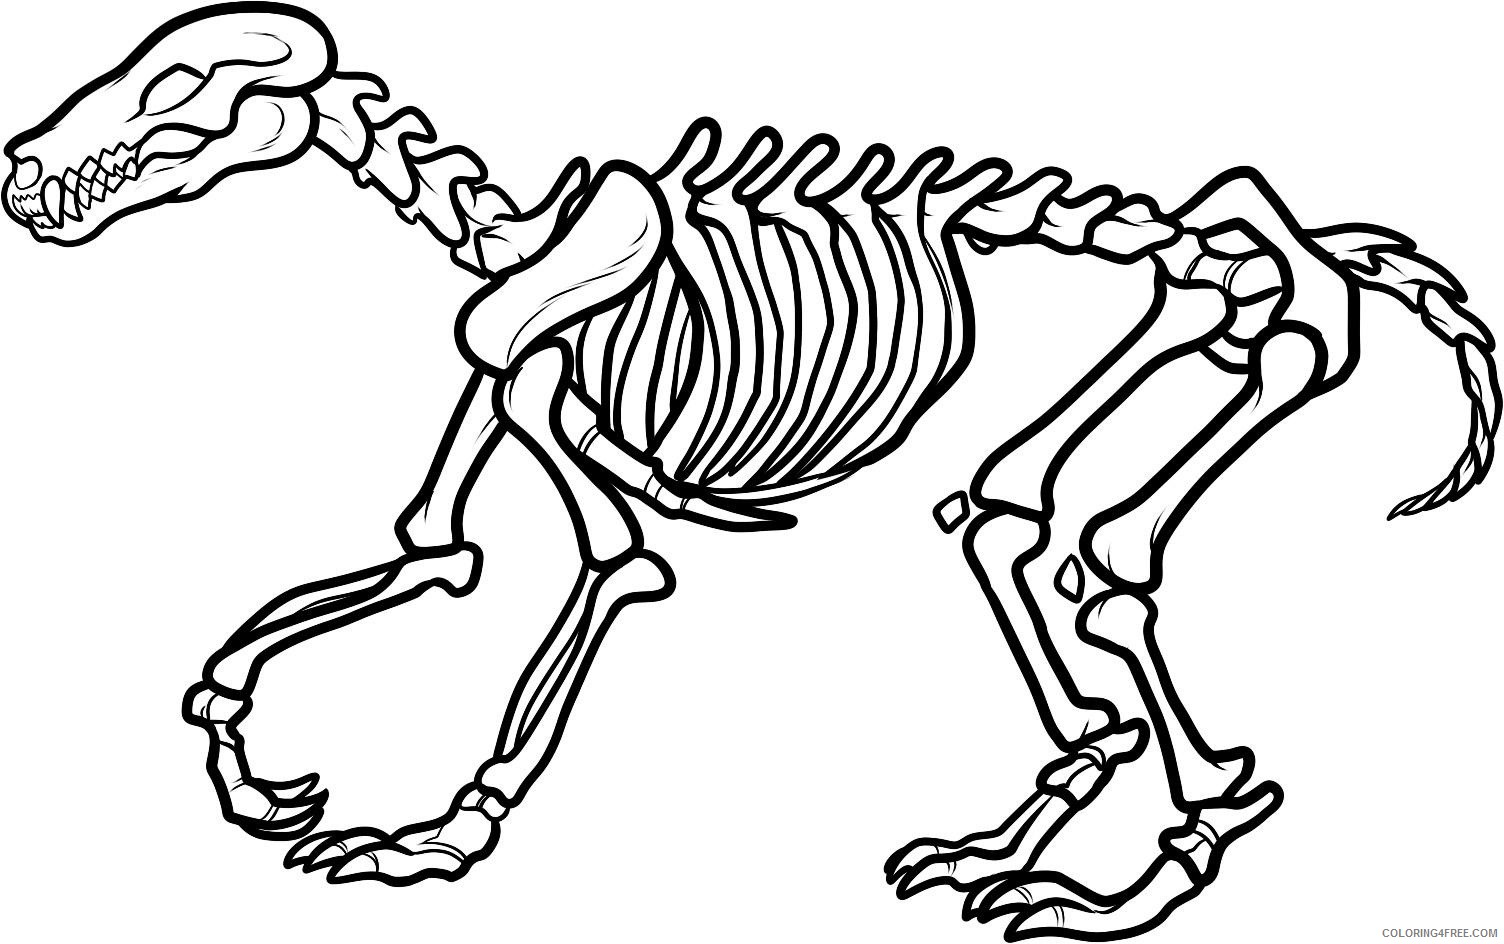 dinosaur skeleton coloring pages Coloring4free